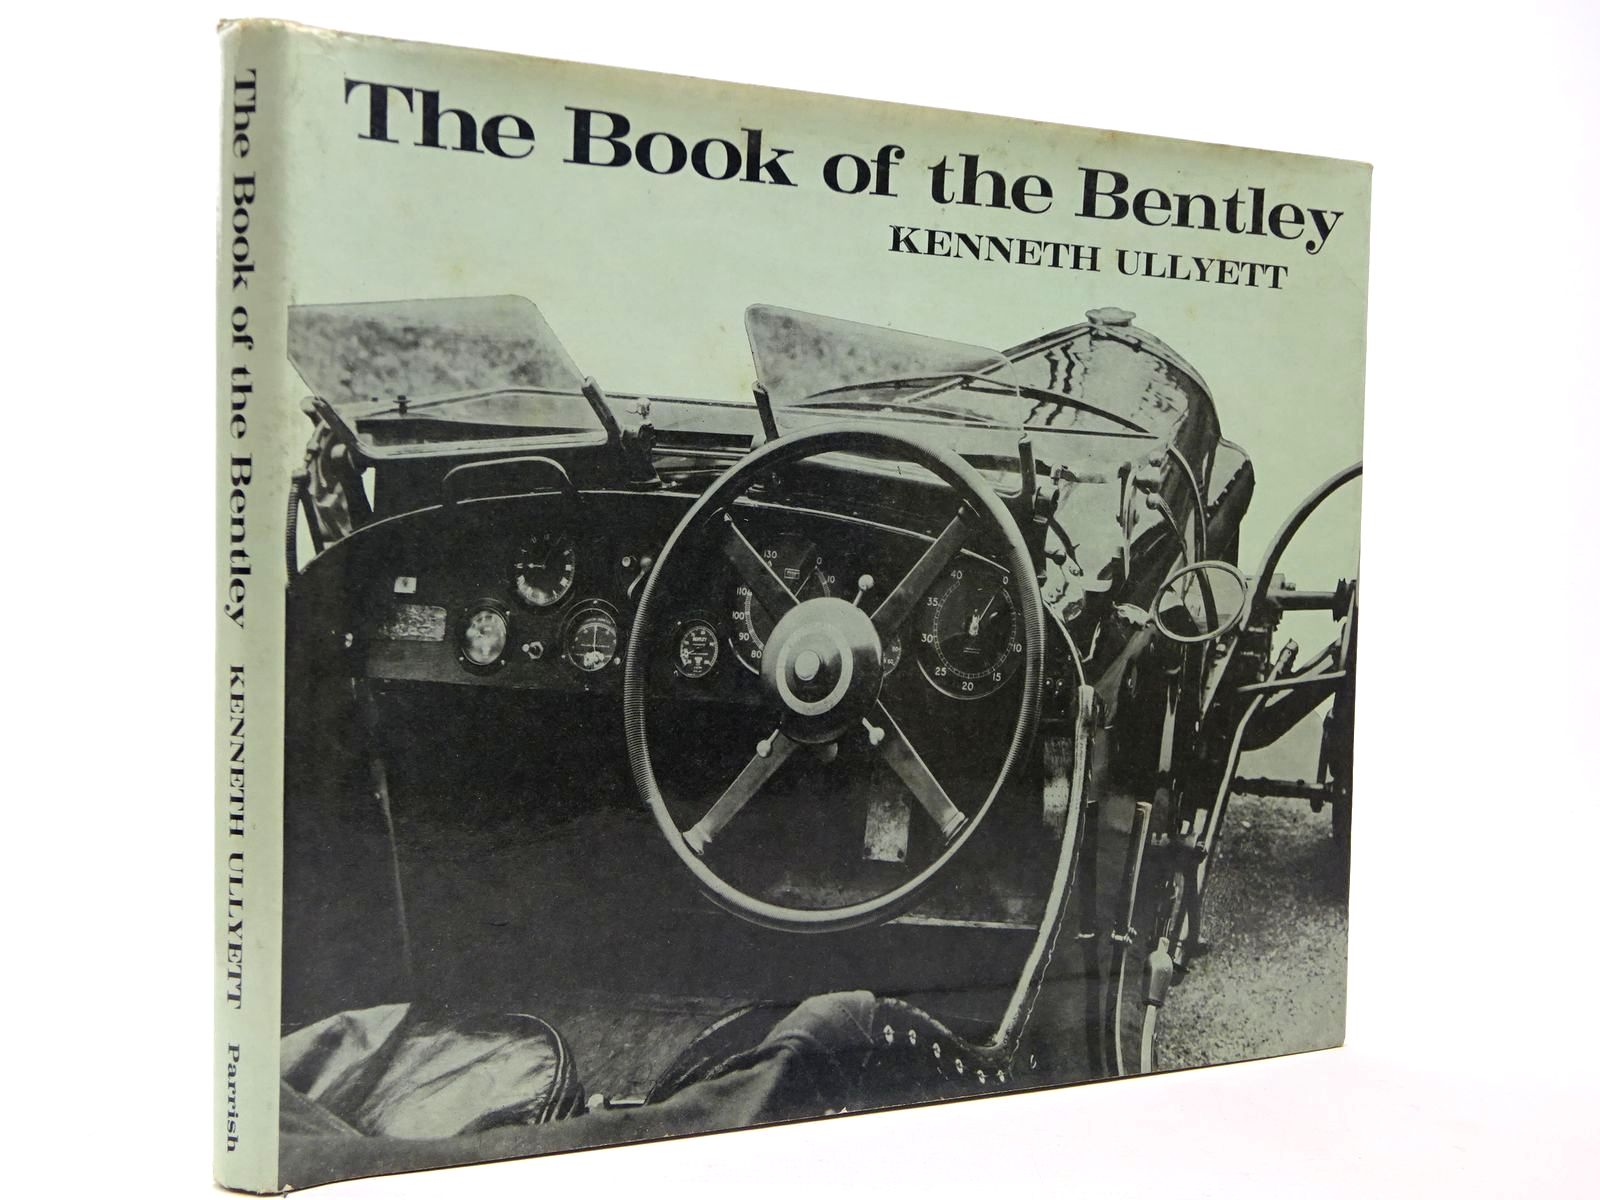 Photo of THE BOOK OF THE BENTLEY written by Ullyett, Kenneth published by Max Parrish And Co Ltd (STOCK CODE: 2129754)  for sale by Stella & Rose's Books